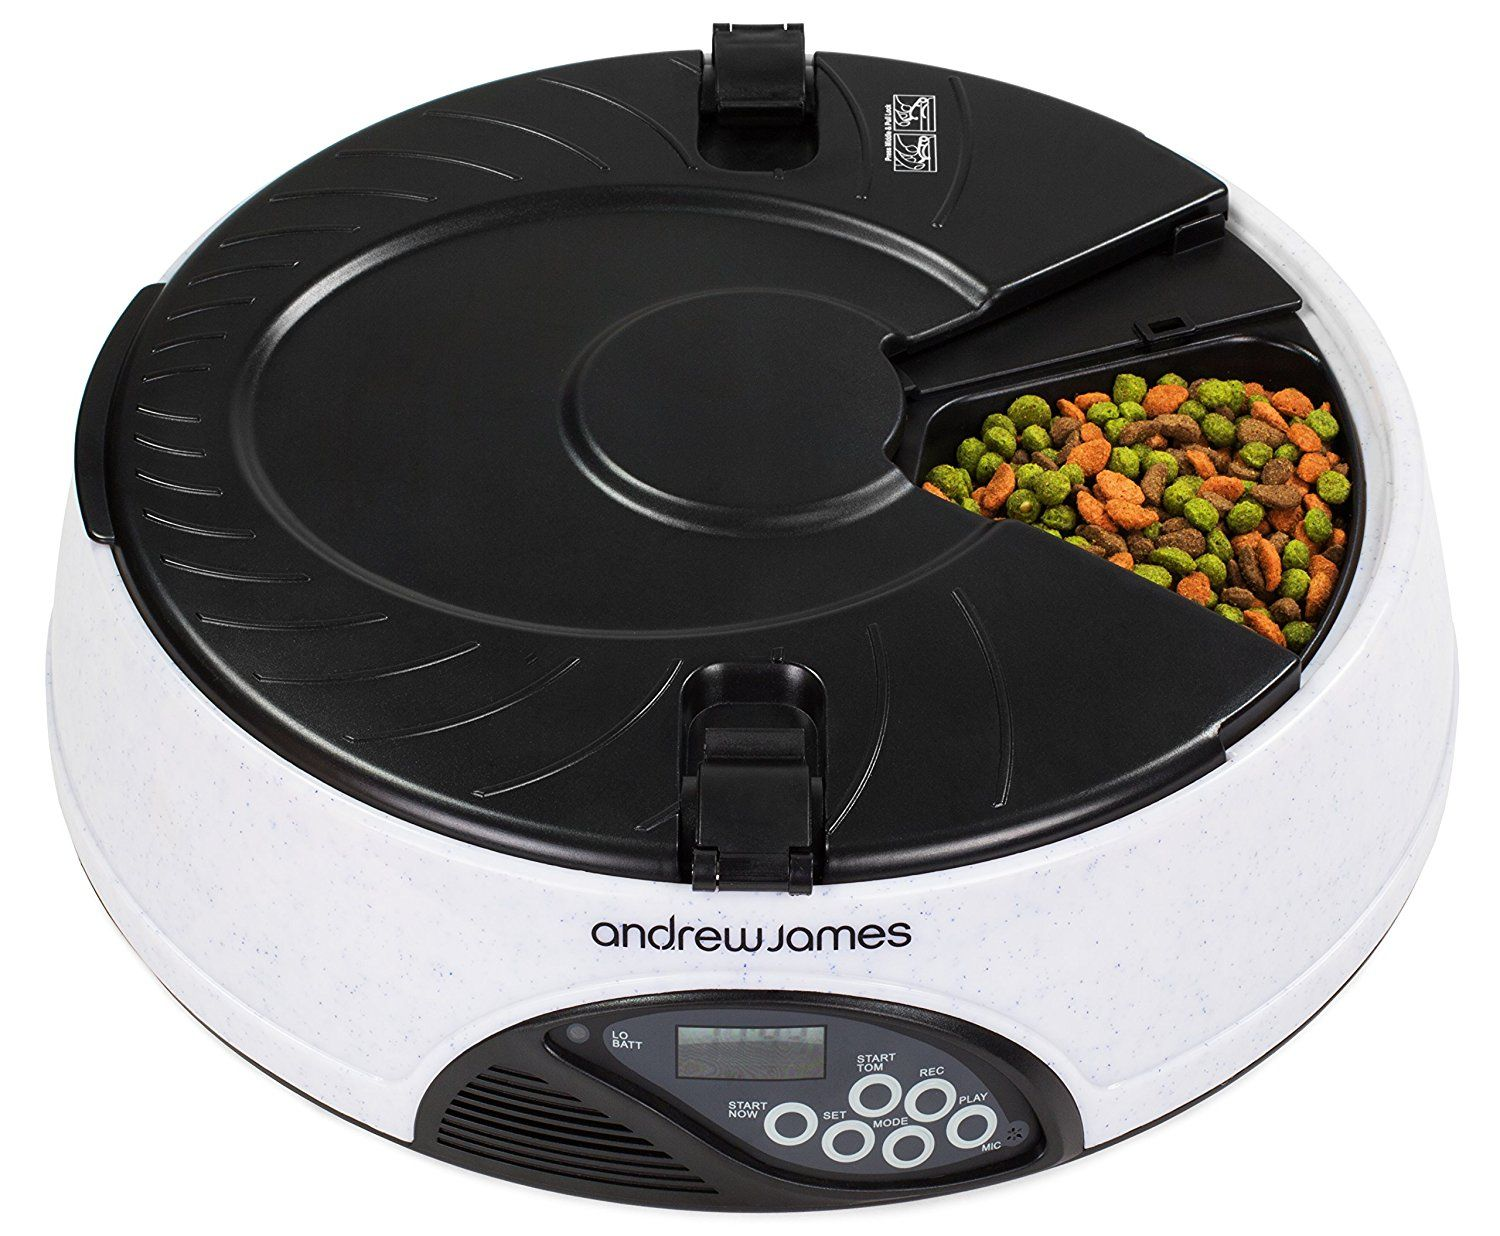 Andrew James 6 Day Meal Automatic Pet Feeder Bowl With Voice Recorder